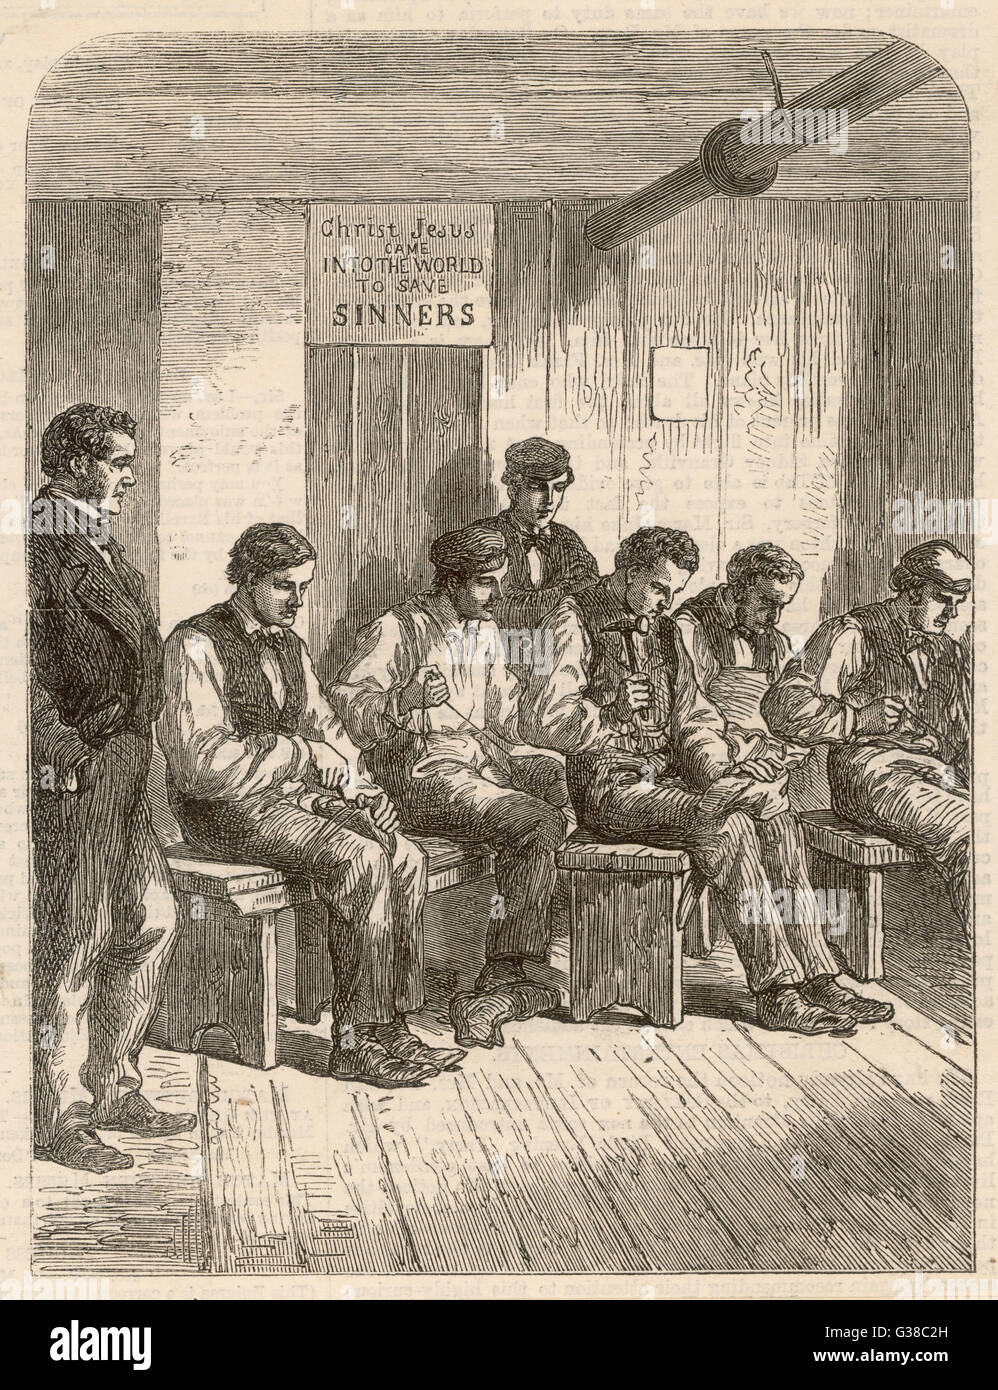 Shoemaking instruction at a  Poor Law Institution        Date: 1860 - Stock Image